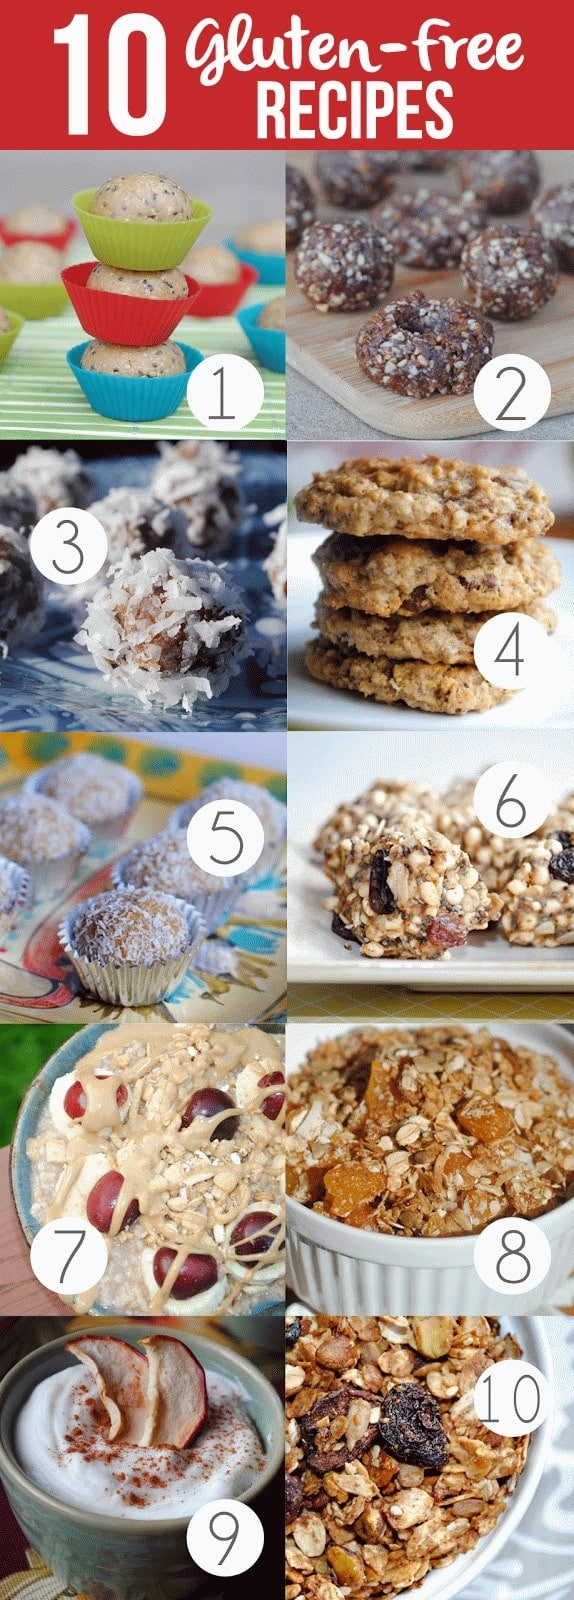 10 Gluten-Free Recipes